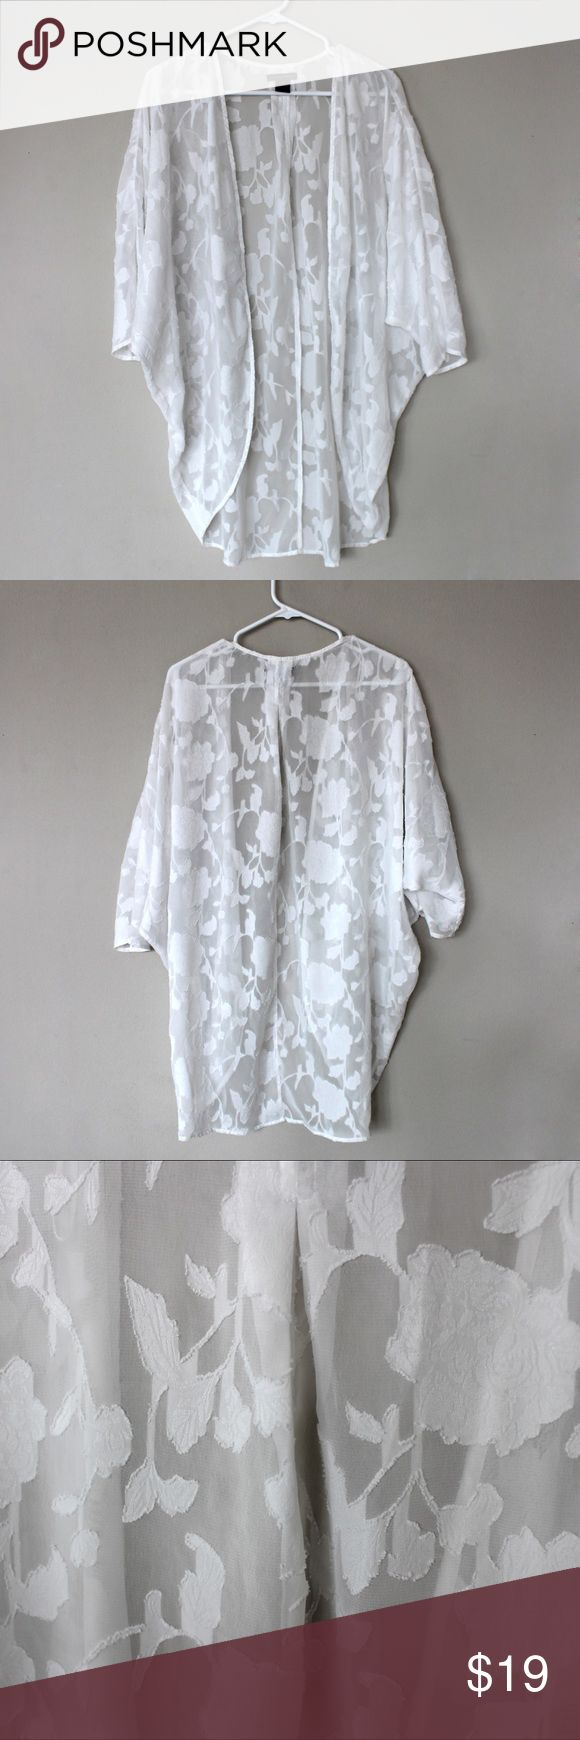 CLOSET CLOSING! Bohemian White Floral Lace Kimono CLOSET CLOSING 4/28/2017  BUY OR MAKE AN OFFER!  🔷Chelsea & Theodore Flowing Kimono 🔹White Floral Lace Appliques 🔹Size S 🔹100% polyester. 🔹Machine Wash, Tumble Dry  Super Romantic, Bohemian Kimono. Perfect for lazy lounges or sexy nights out. Only worn a handful of times. The model picture is to show how it fits. There is a mark on the inside of the kimono that can't be seen from the outside, as shown in the close up. Chelsea & Theodore…